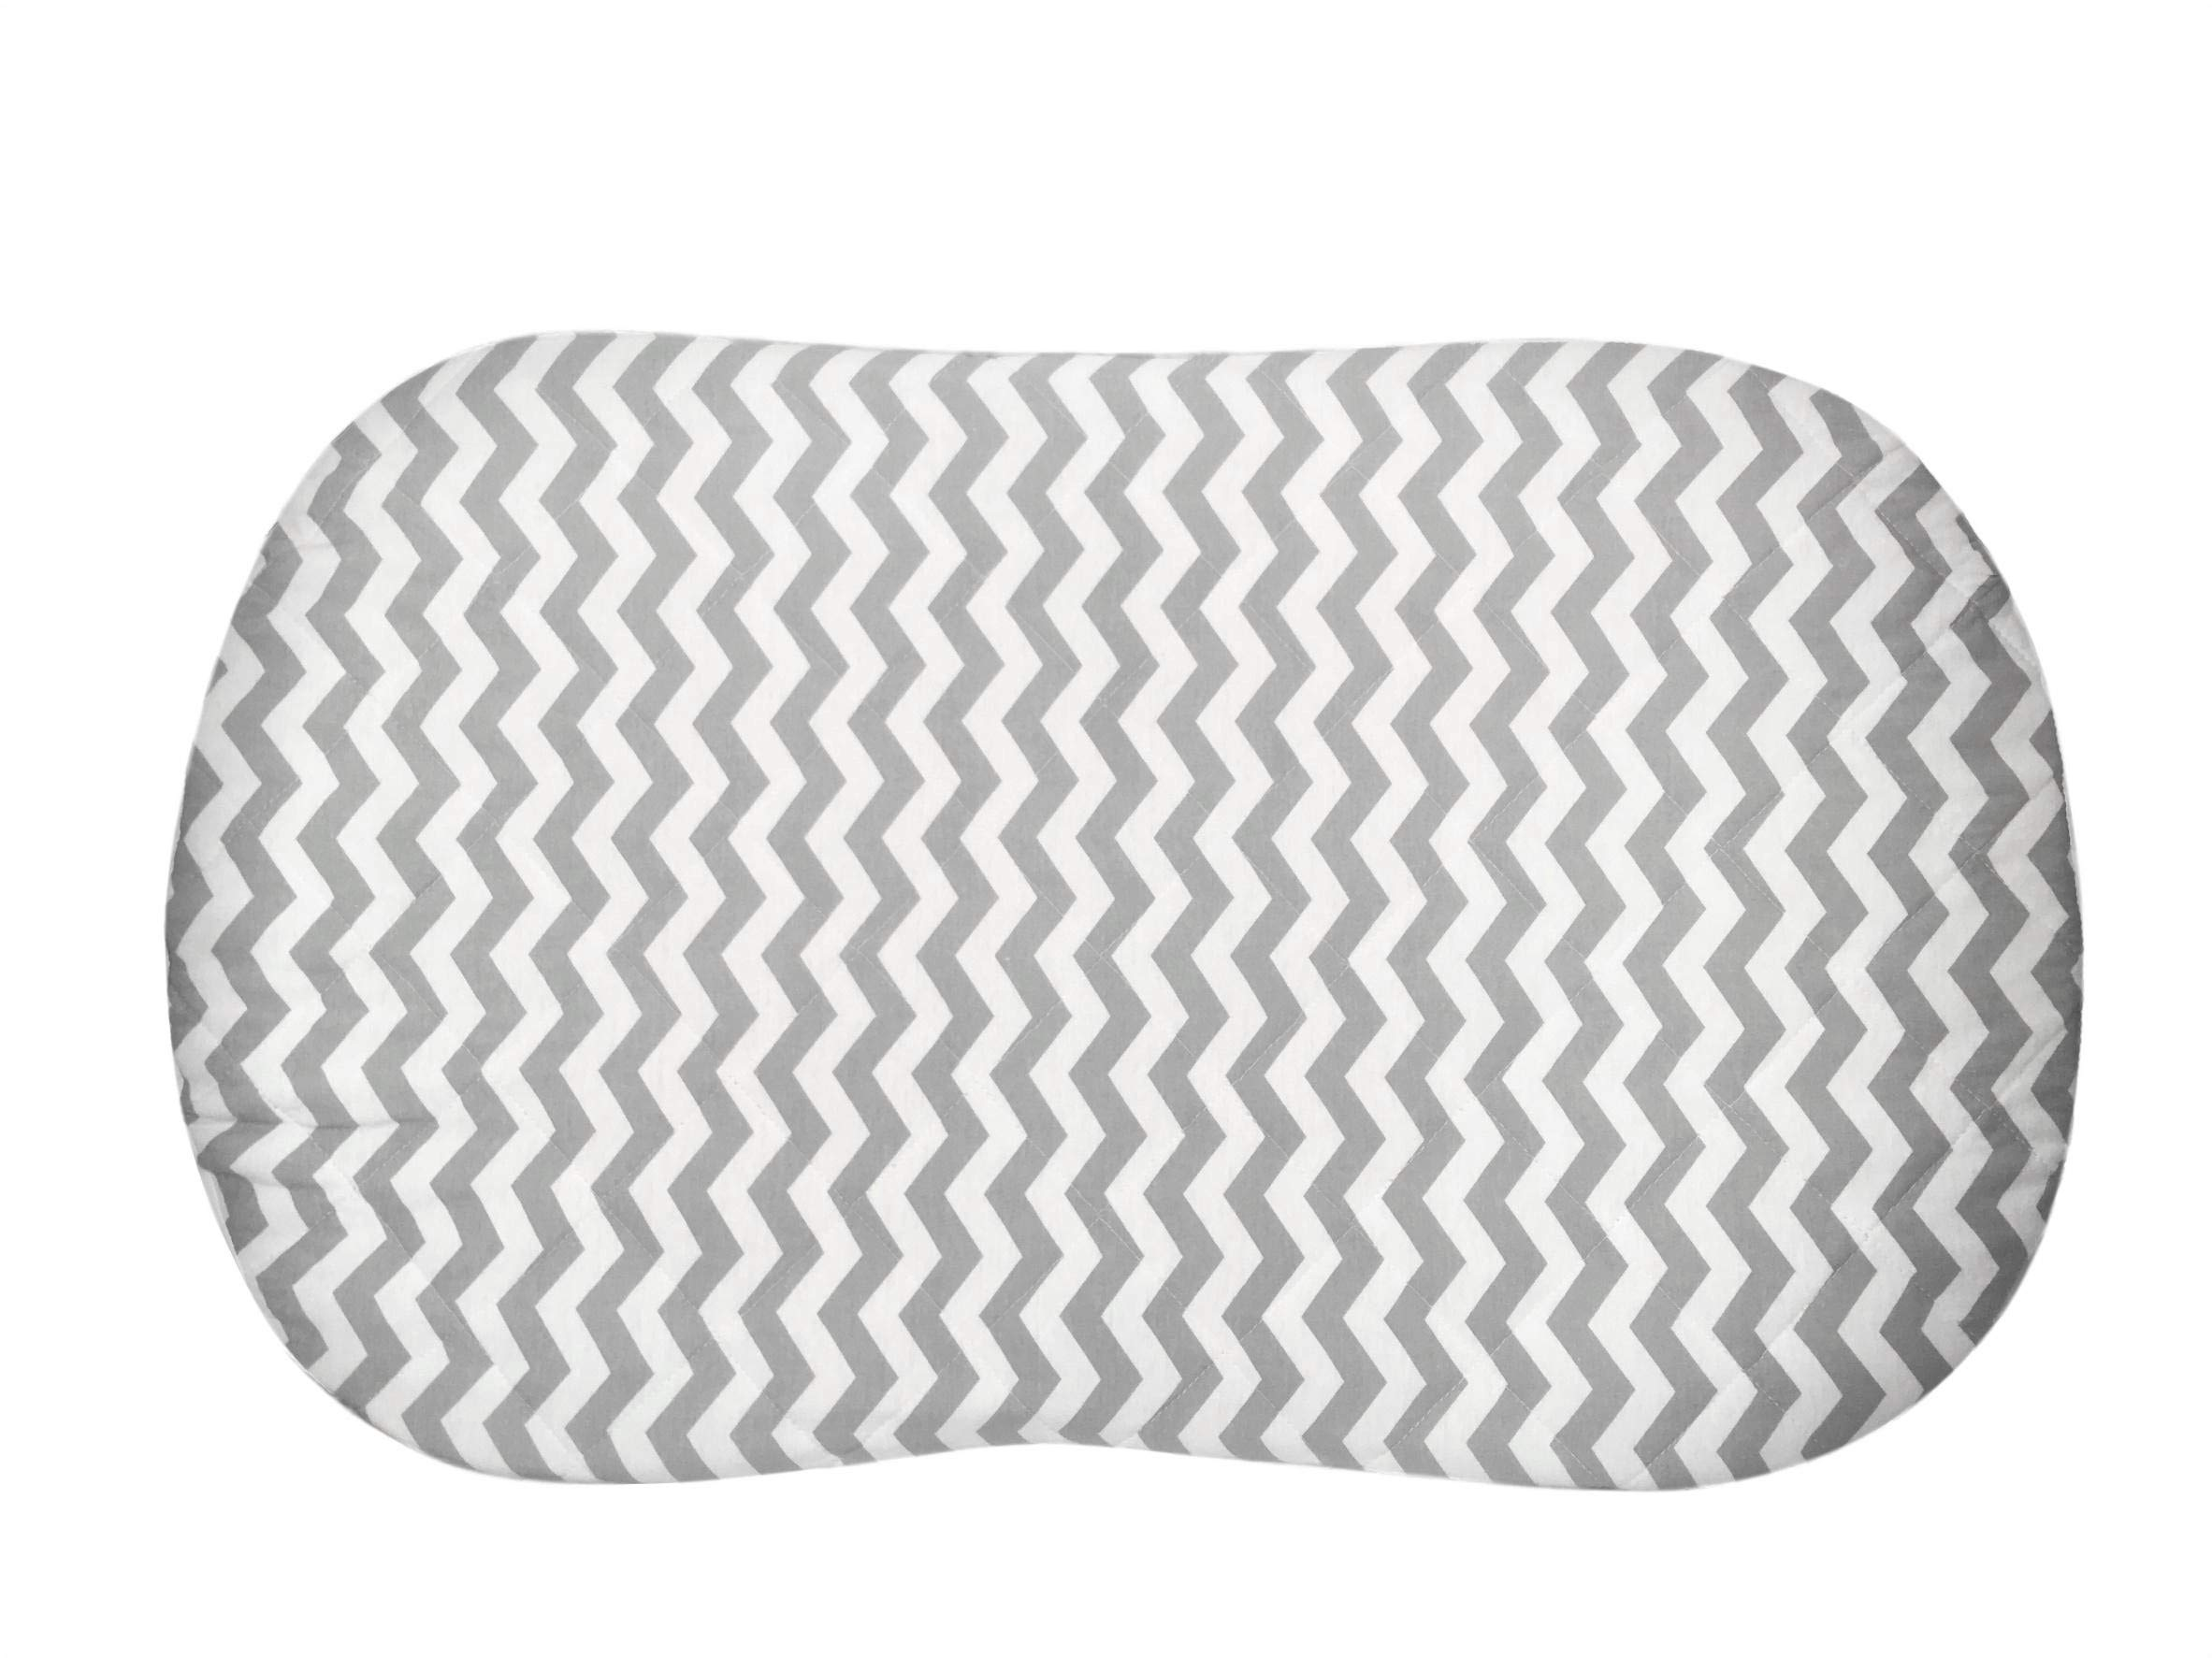 Best Halo Bassinet Mattress Pad - & Sheet Cover Protector, Waterproof Fitted Sheets for Halo Swivel Sleeper, Hypoallergenic, White & Grey Chevron Design for Baby Boy & Girl, Smart Elastic Band Design